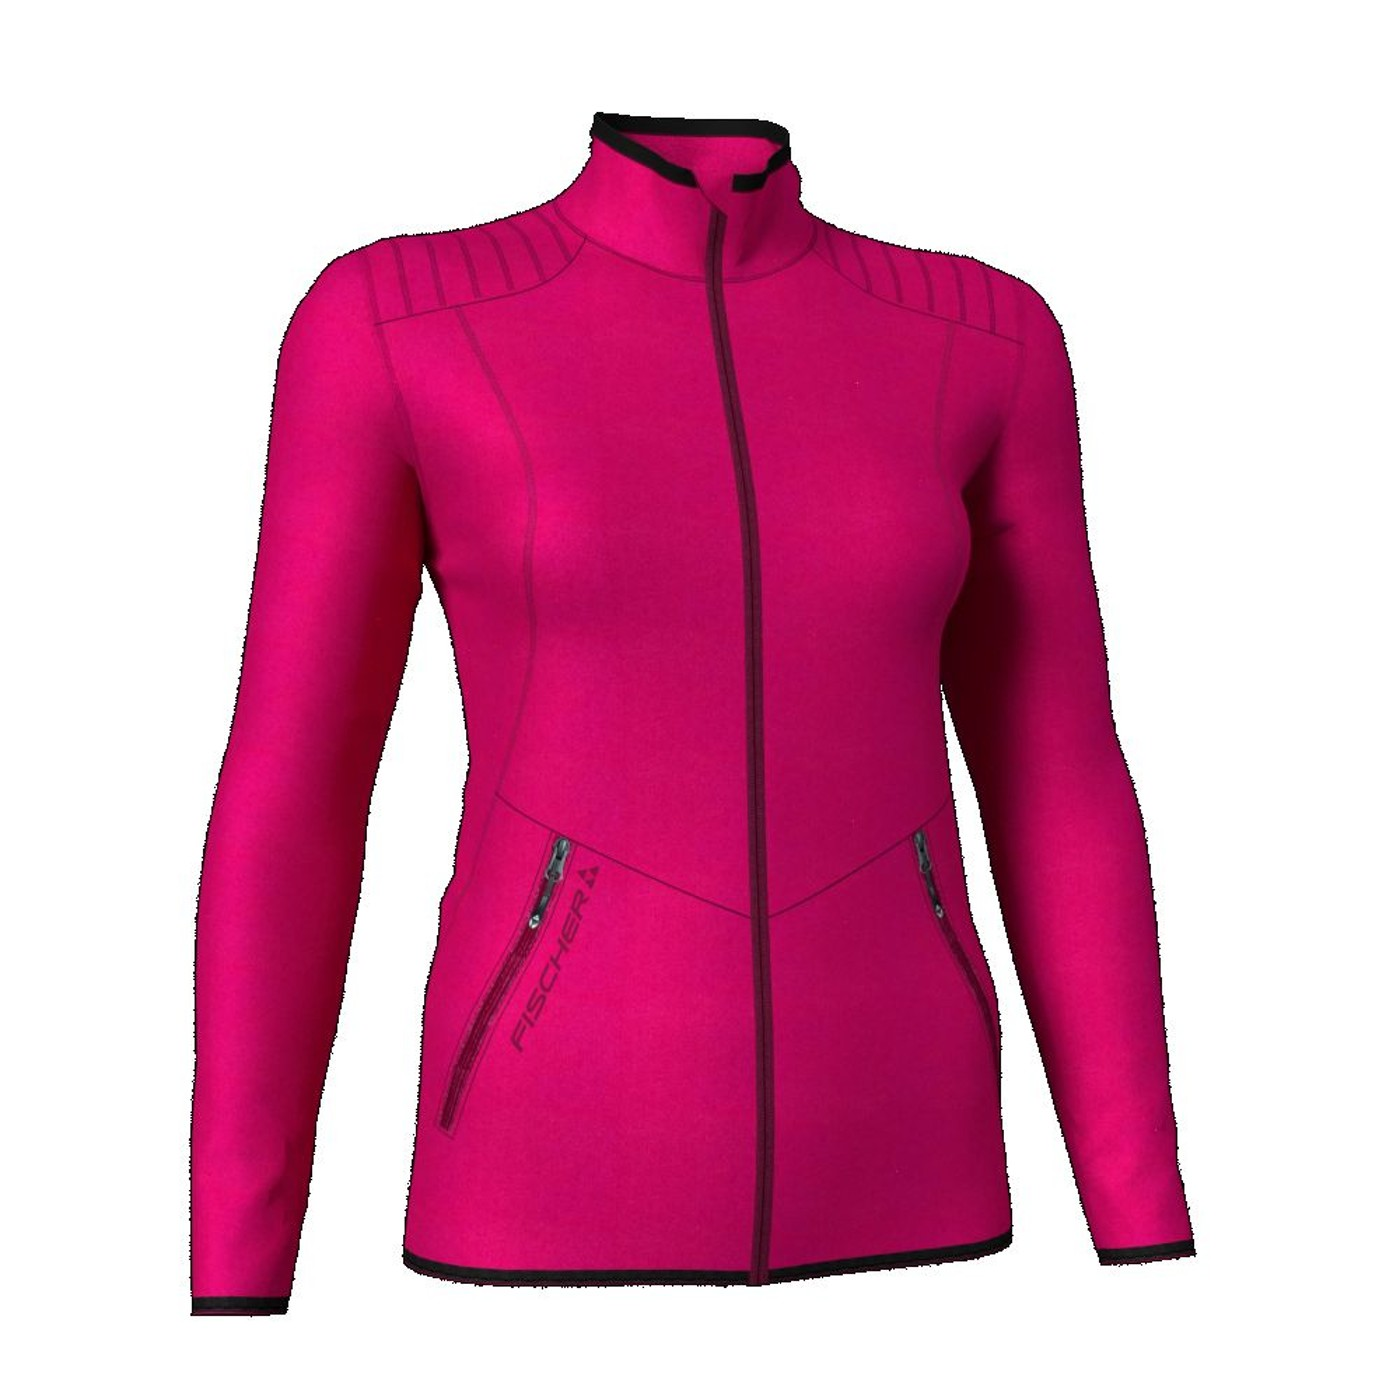 Matrei Fischer Jacket - Damen